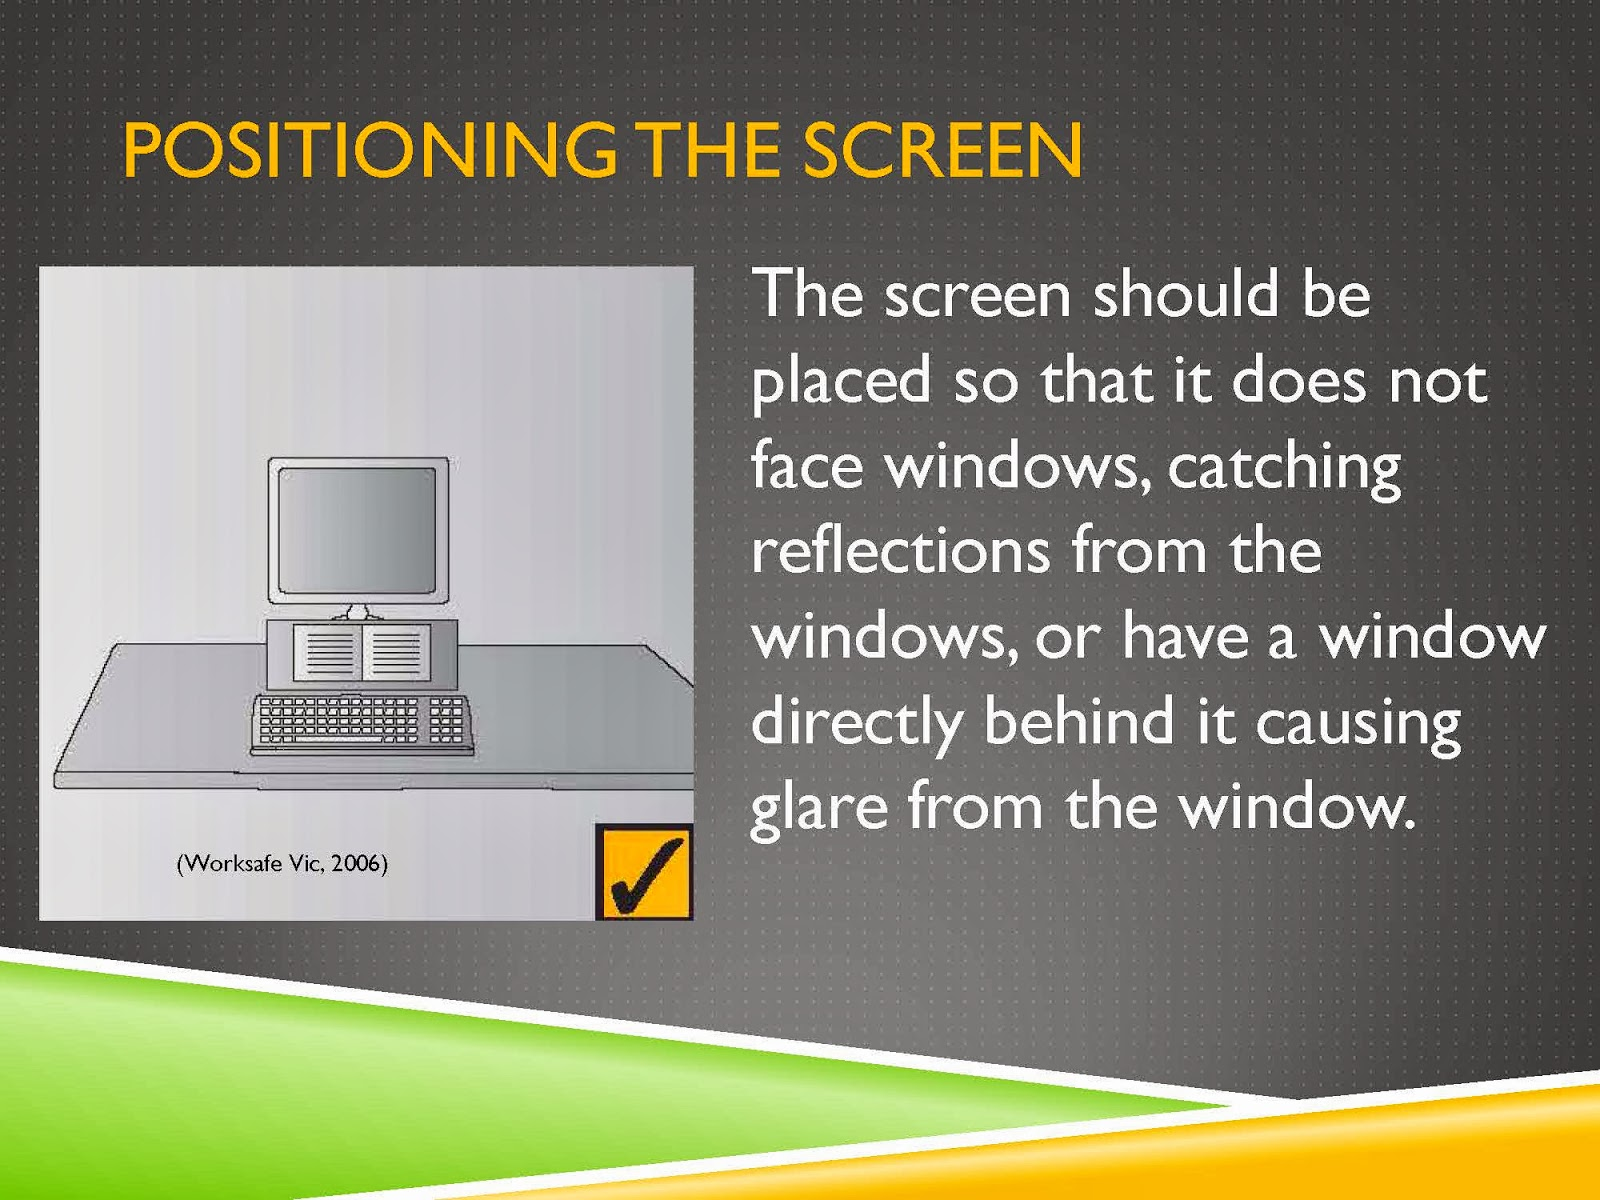 POSITIONING THE SCREENS